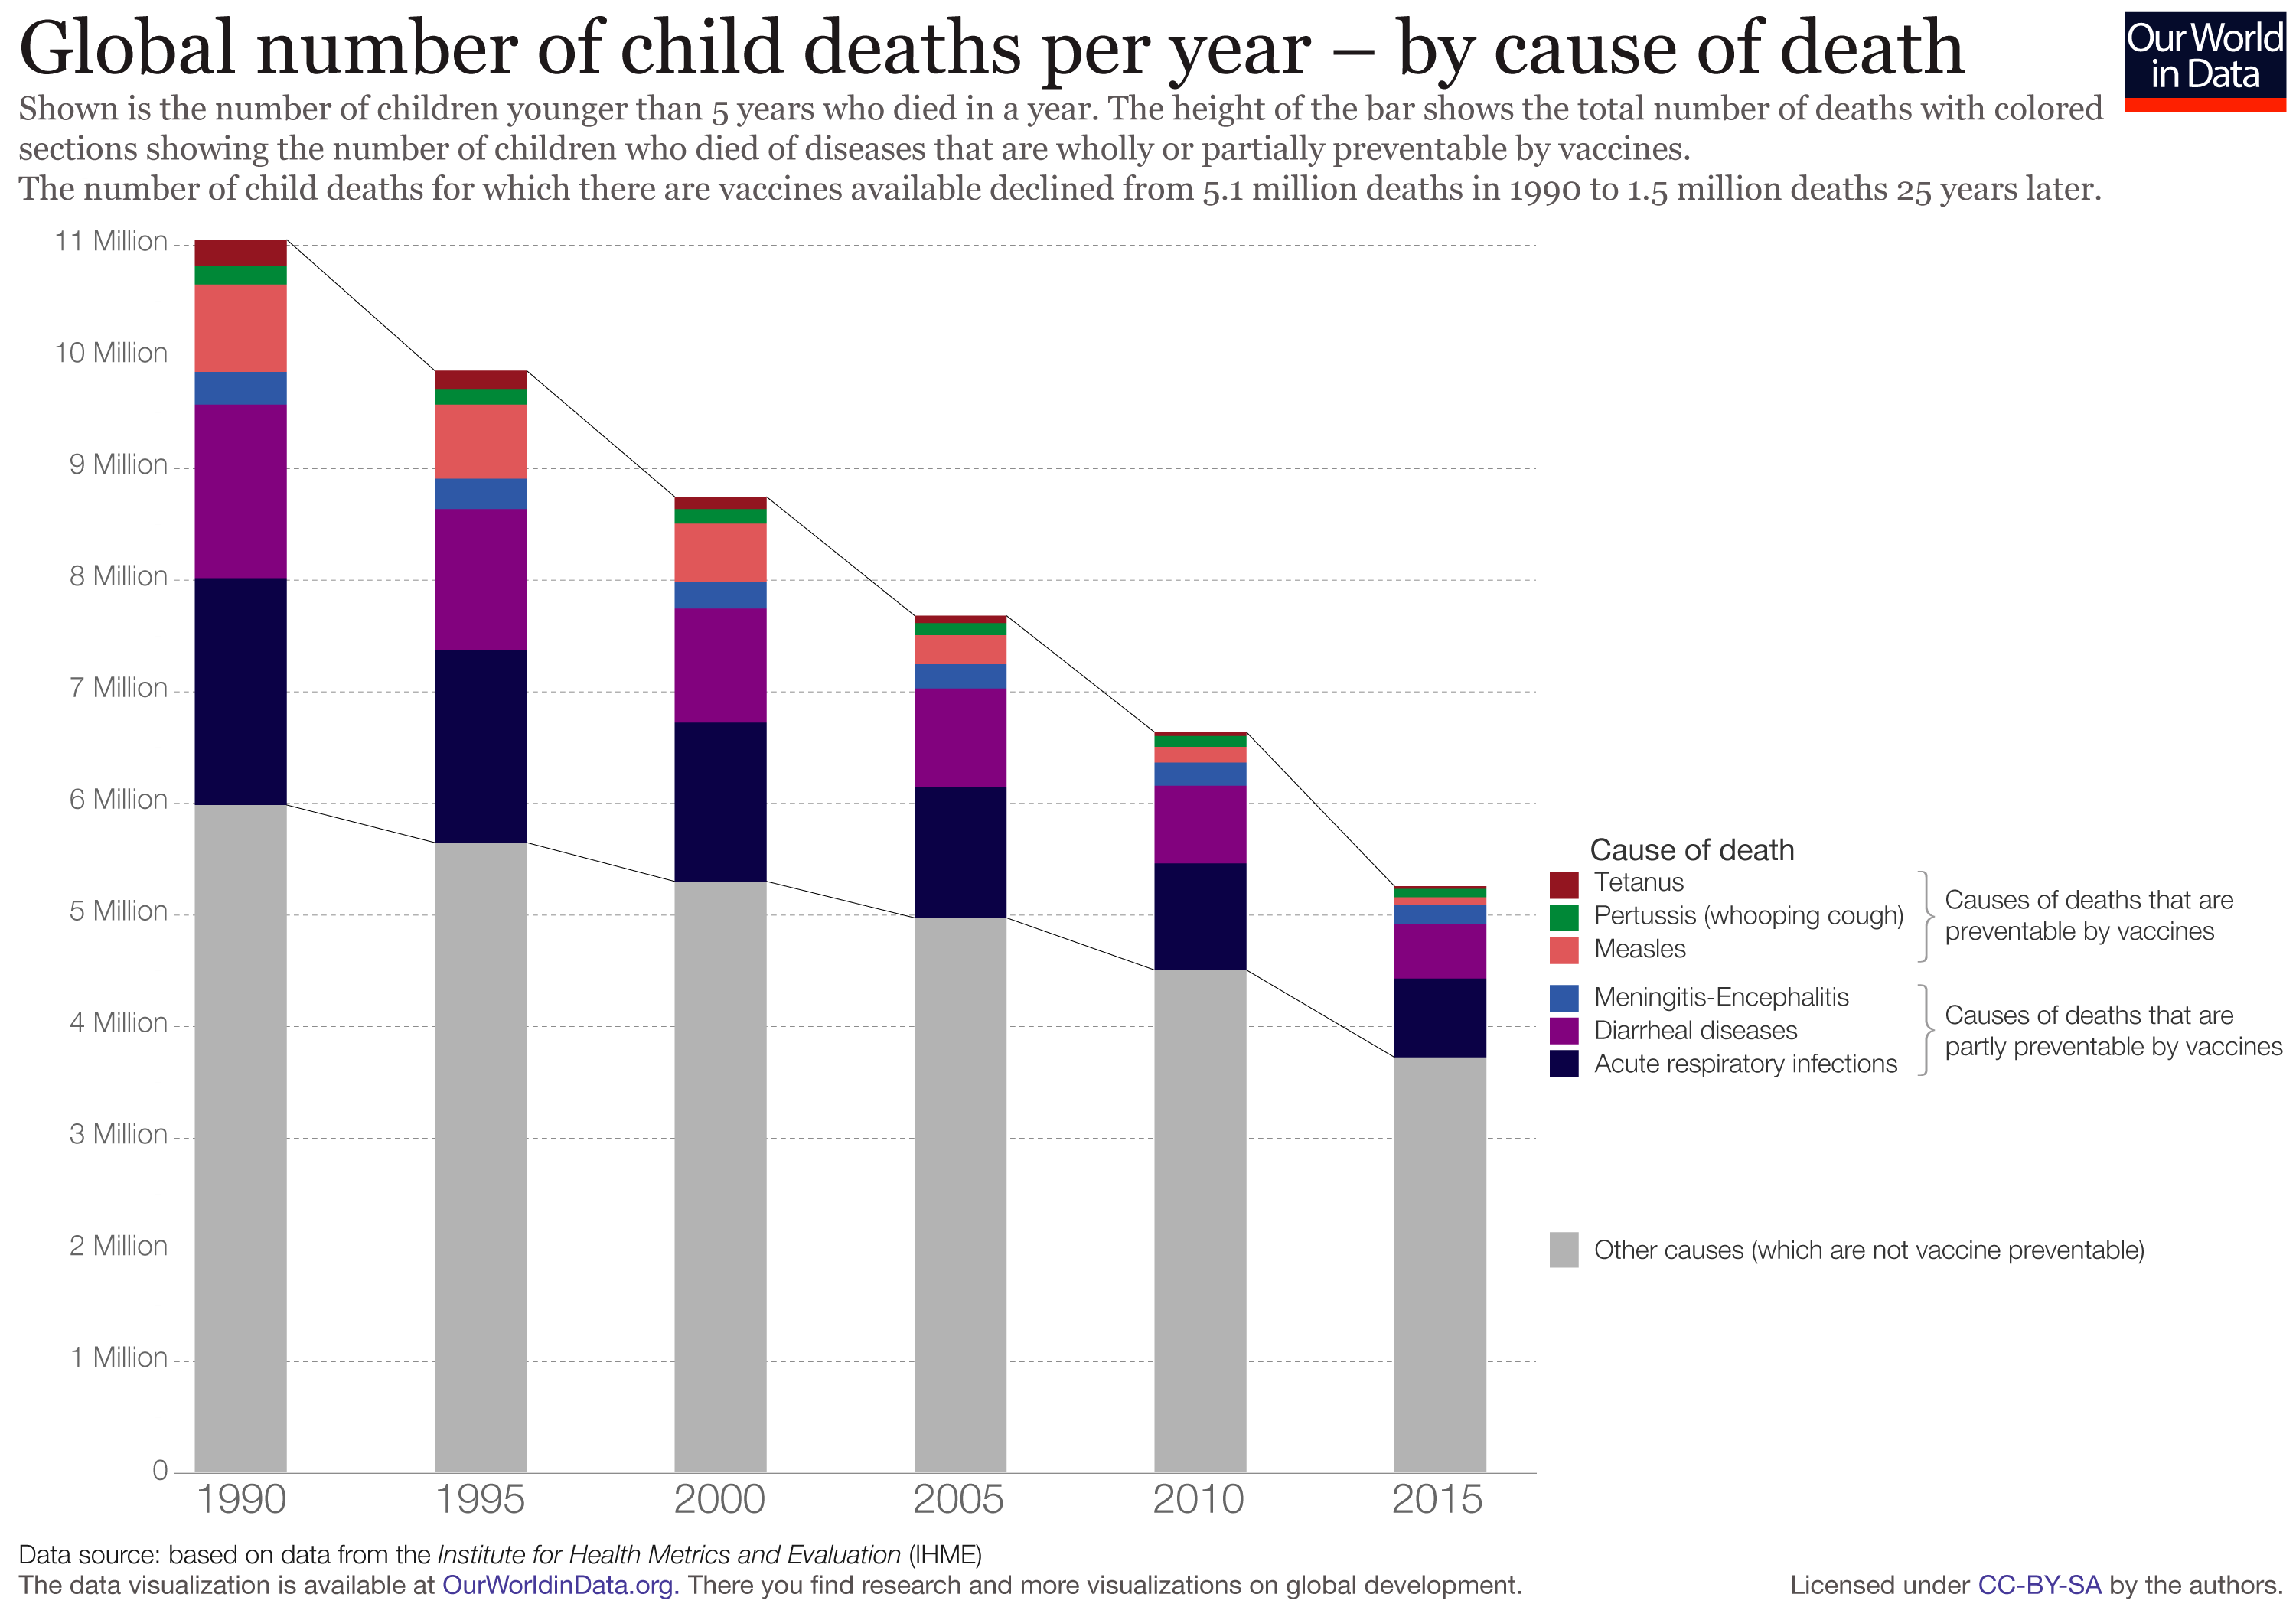 Reduction of child deaths due to vaccine preventable diseases v2 2